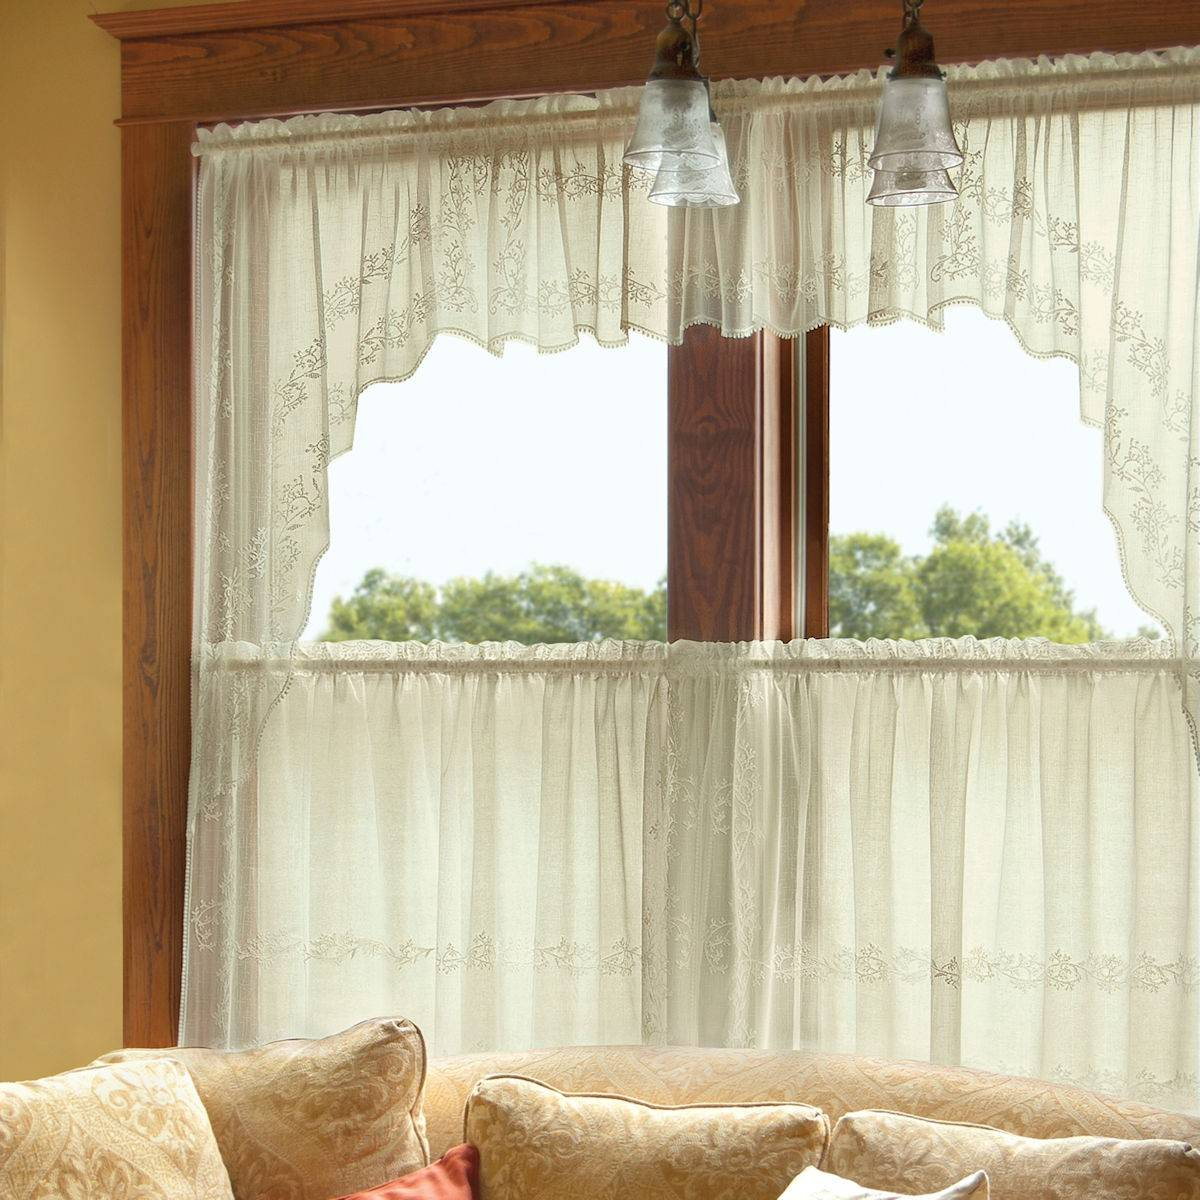 Appealing Lace Curtain Valances And Tiers Ideas Kitchen Intended For Microfiber 3 Piece Kitchen Curtain Valance And Tiers Sets (View 16 of 20)